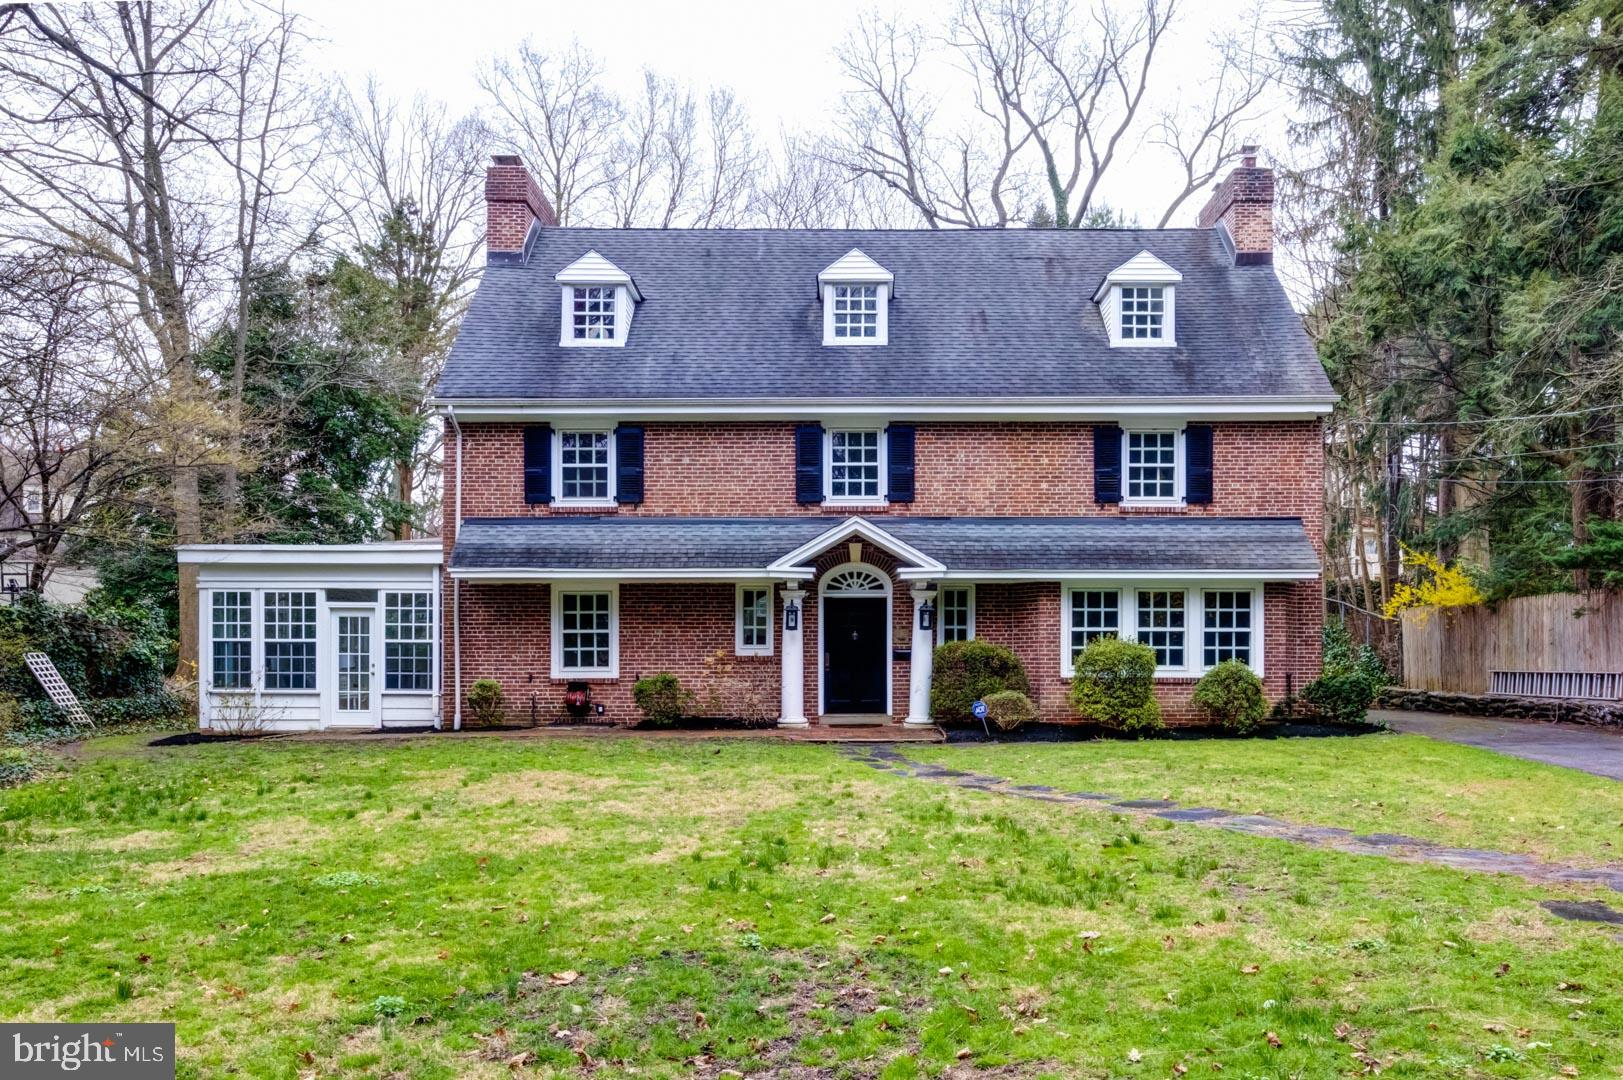 Classic brick colonial with exquisite old house charm in central Ardmore location. Walking distance to both Ardmore and Haverford trains/town centers. Arched doorways, molding, glorious hardwood floors and all the beloved detail you would hope for. Formal dining and living room. Bright sunporch for family room. Updated kitchen with mudroom, wet bar and stainless steel appliances. Upstairs a master bedroom with two closets, decorative fireplace and en-suite bath. Two additional bathrooms (one on the second and one on the third) have been completely renovated. Four additional bedrooms - two on the second floor and two on the third, plus a second floor office. Separate barn above the detached 2 car garage for art studio or other use. Walking distance to Ardmore's Suburban Square, Trader Joes, Lifetime Fitness, Tired Hands Brewing Company and the Ardmore Farmers Market.  Located in the award winning Lower Merion School District. Commuters dream with easy access to train (Amtrak and SEPTA) and all major roadways.